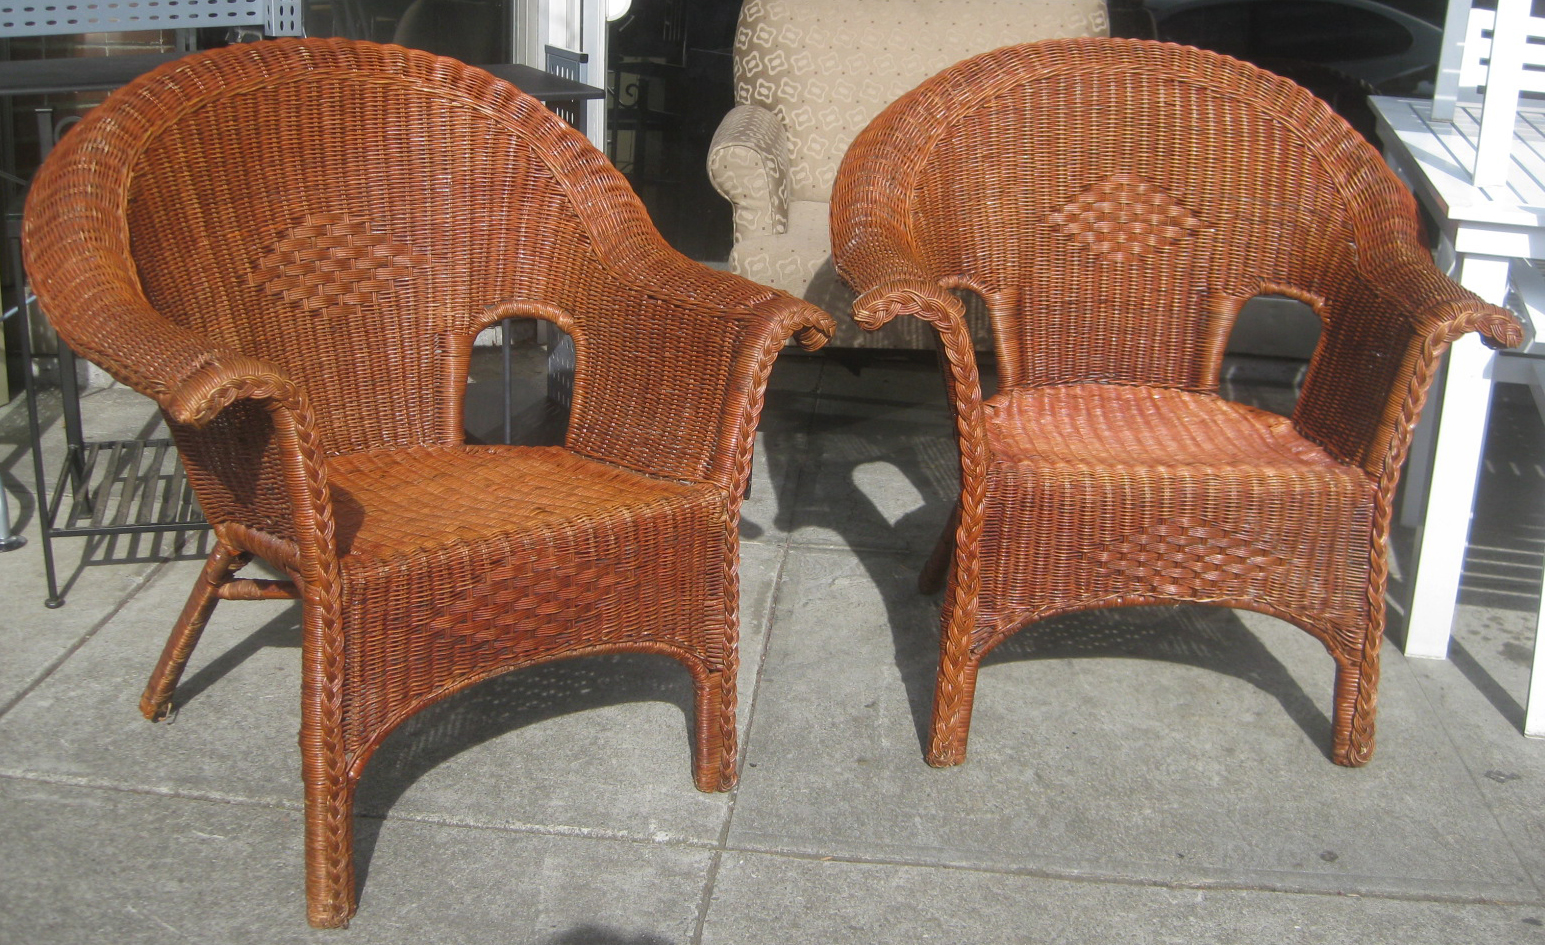 Wicker Patio Chair Ideas